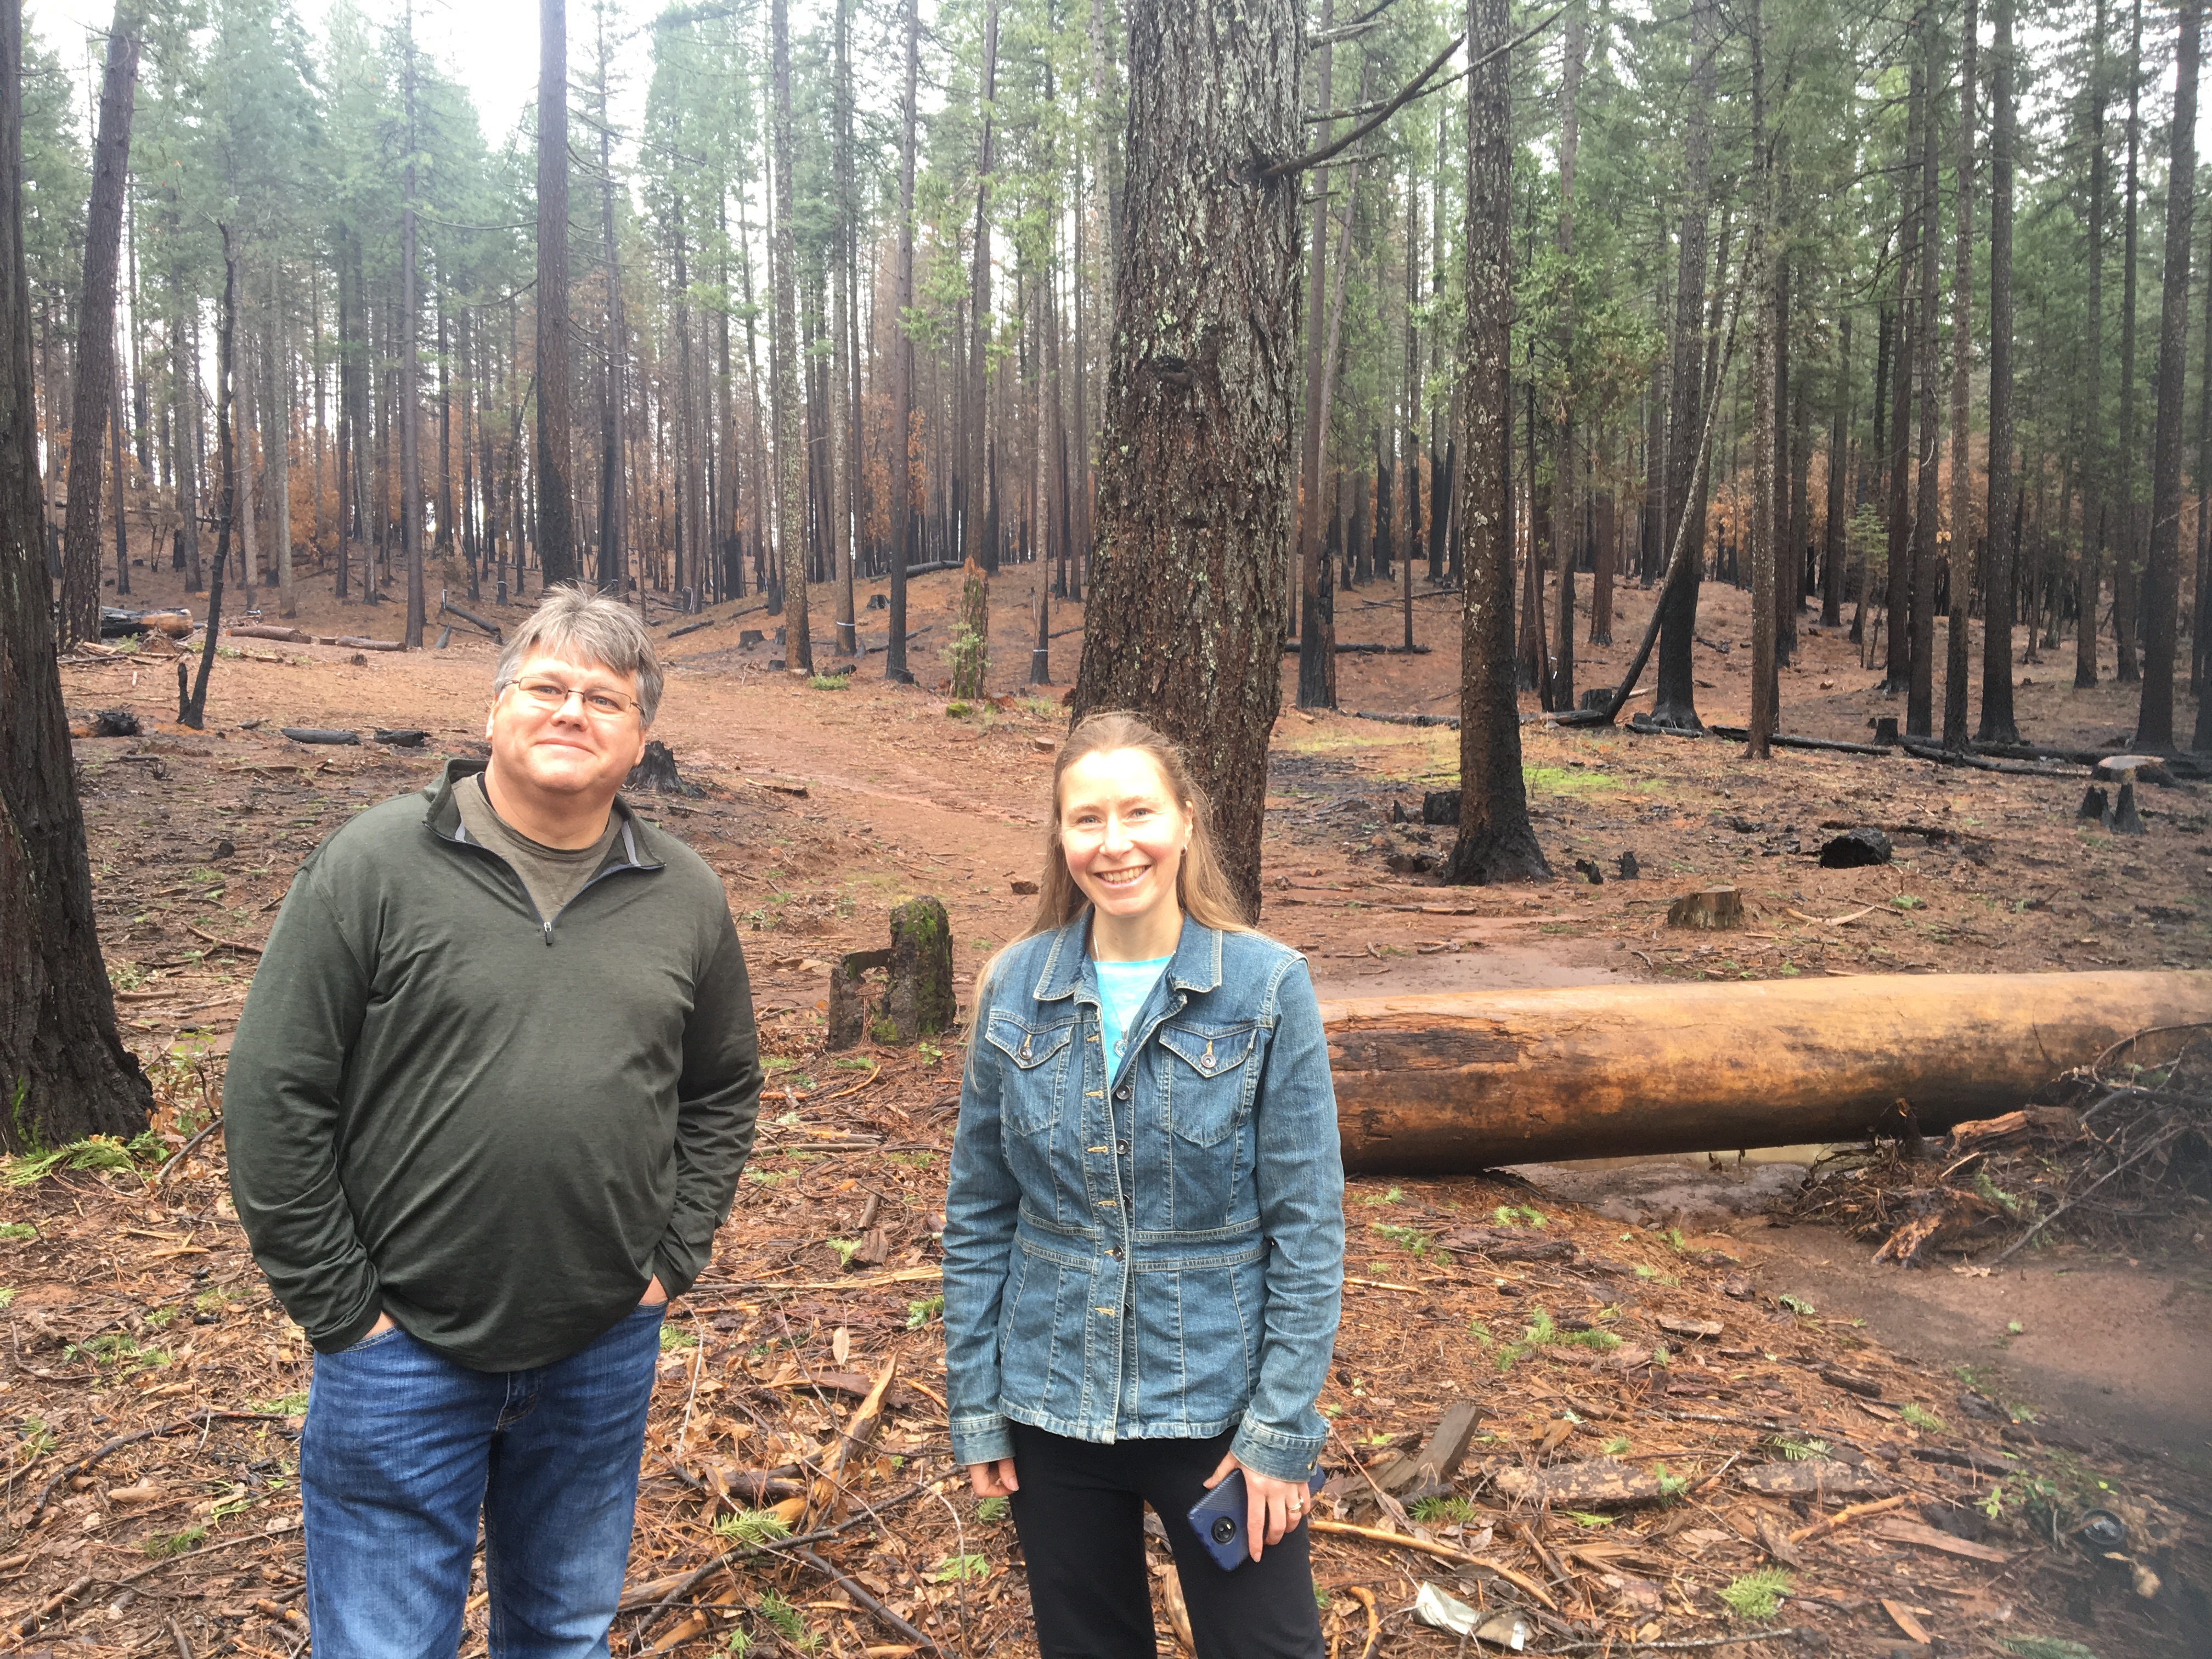 Caption: Jim Hautman and Calli-Jane showing an open forest burn scar